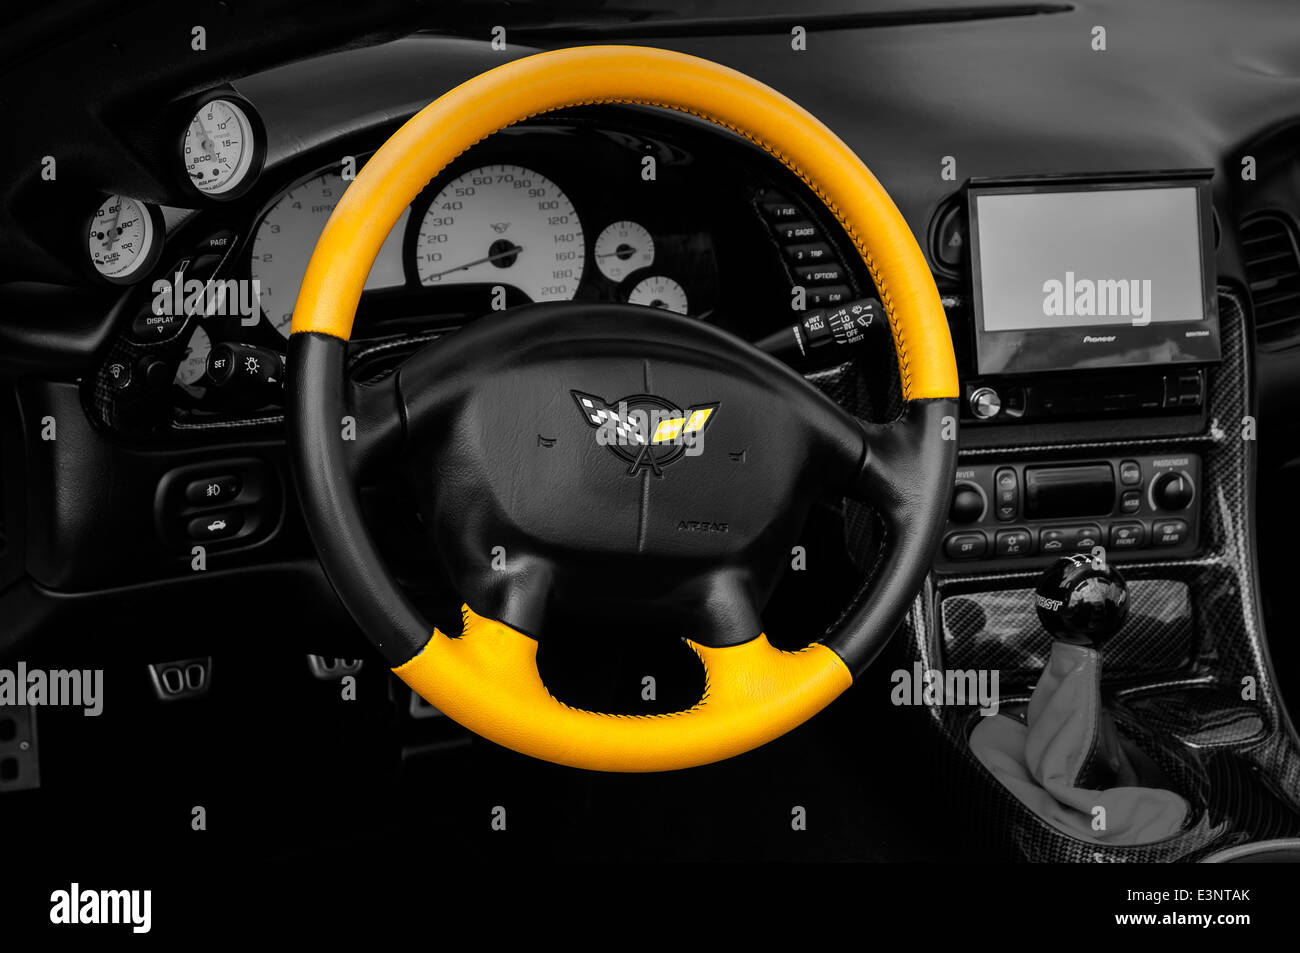 Bright Yellow Steering Wheel And Dashboard Car Auto Show - Car image sign of dashboardcar dashboard icons stock photospictures royalty free car